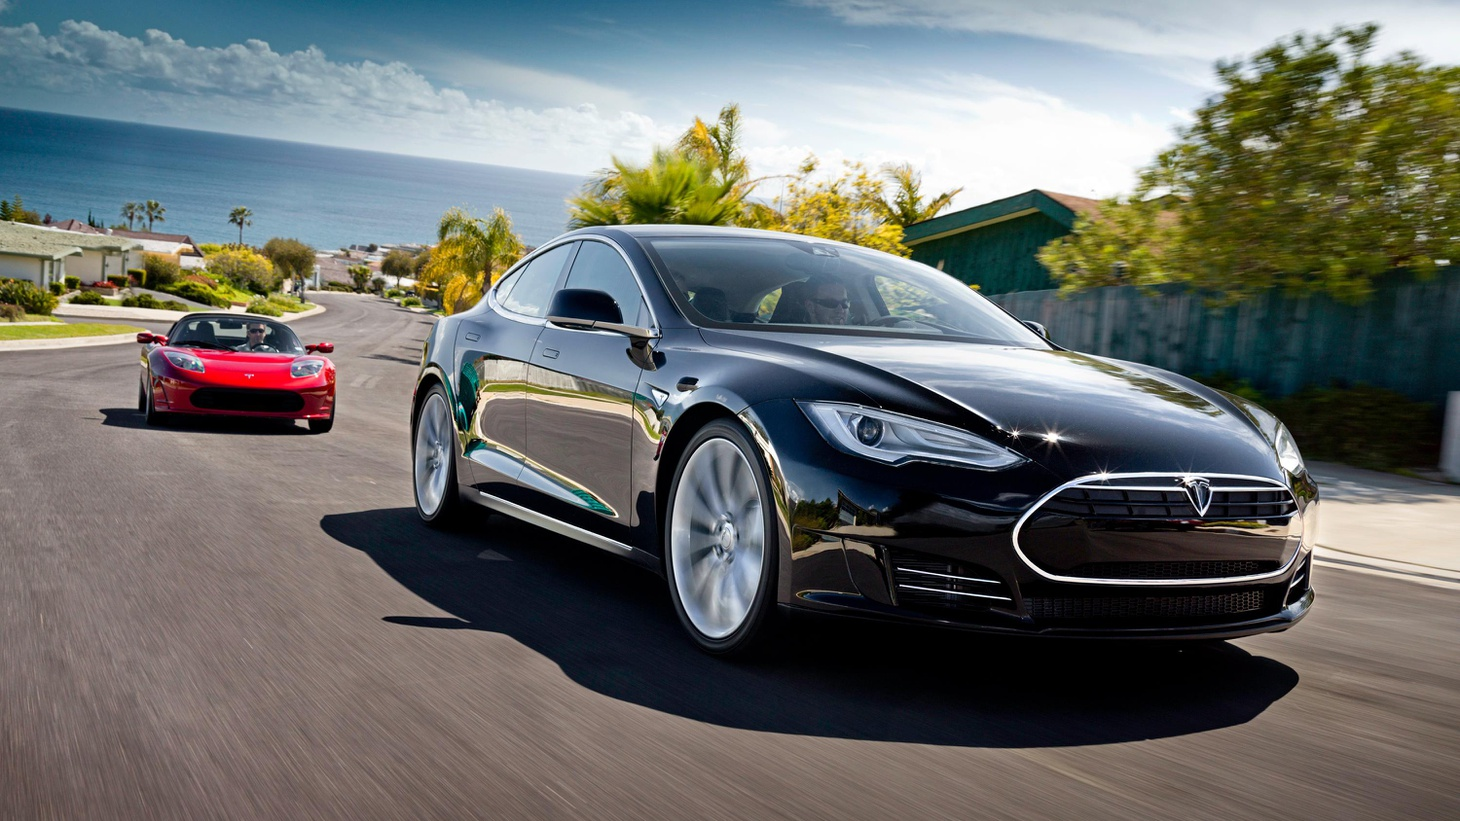 Elon Musk and Franz Von Holzhausen talk about the Tesla Model S all-electric sedan, and the challenge of creating a California car company in an age of vast global brands.